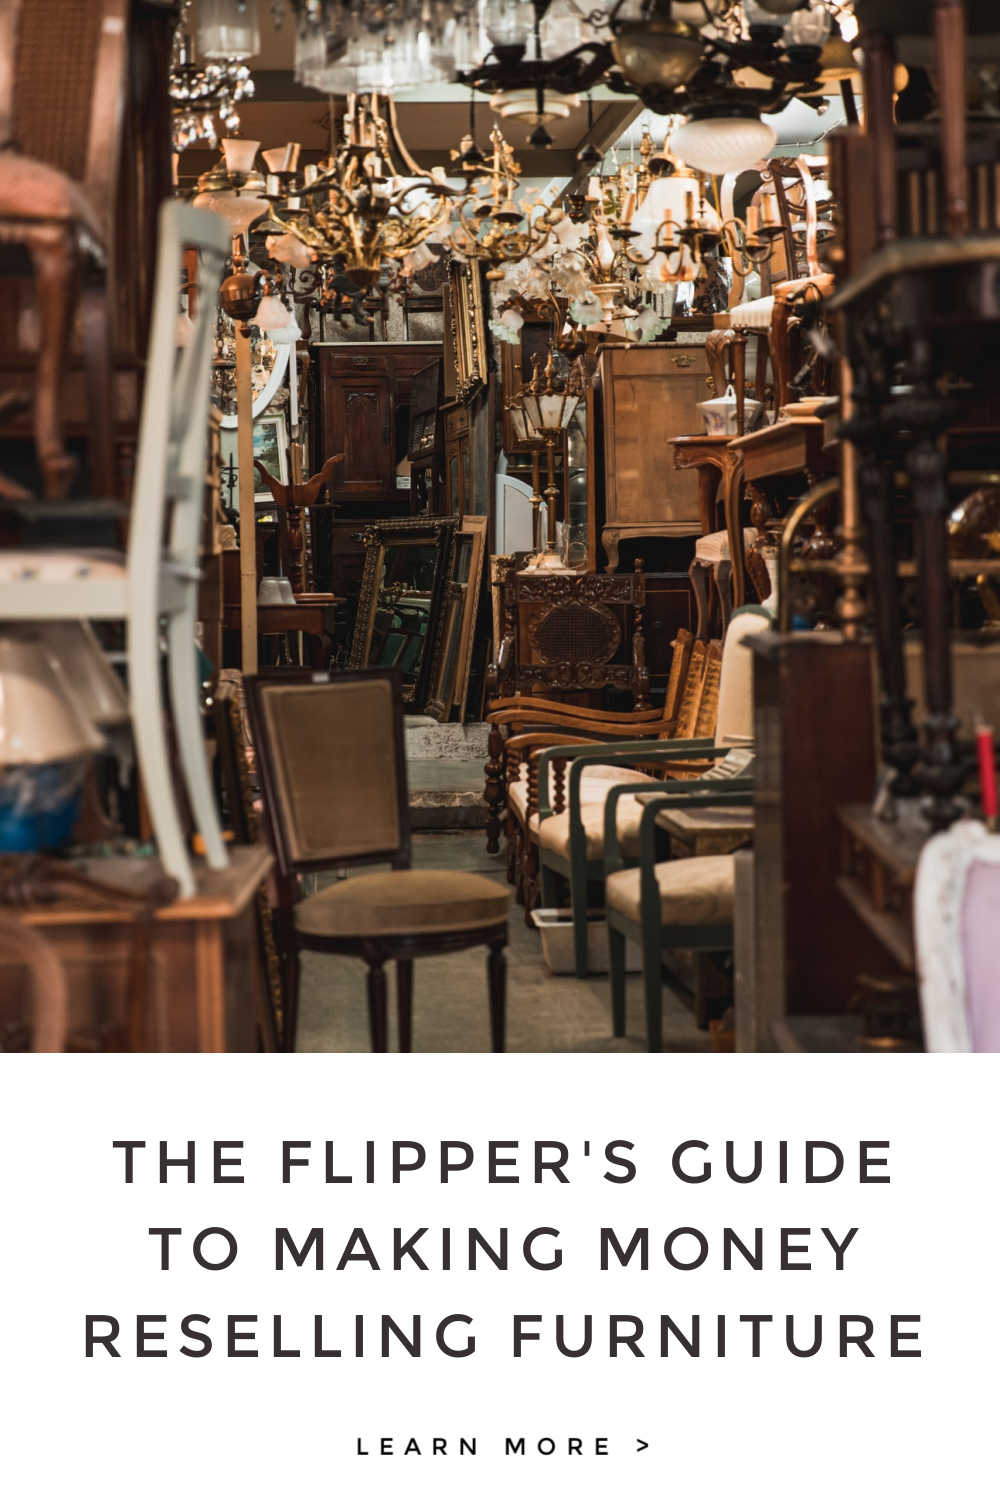 FLIPPERS GUIDE RESELLING FURNITURE